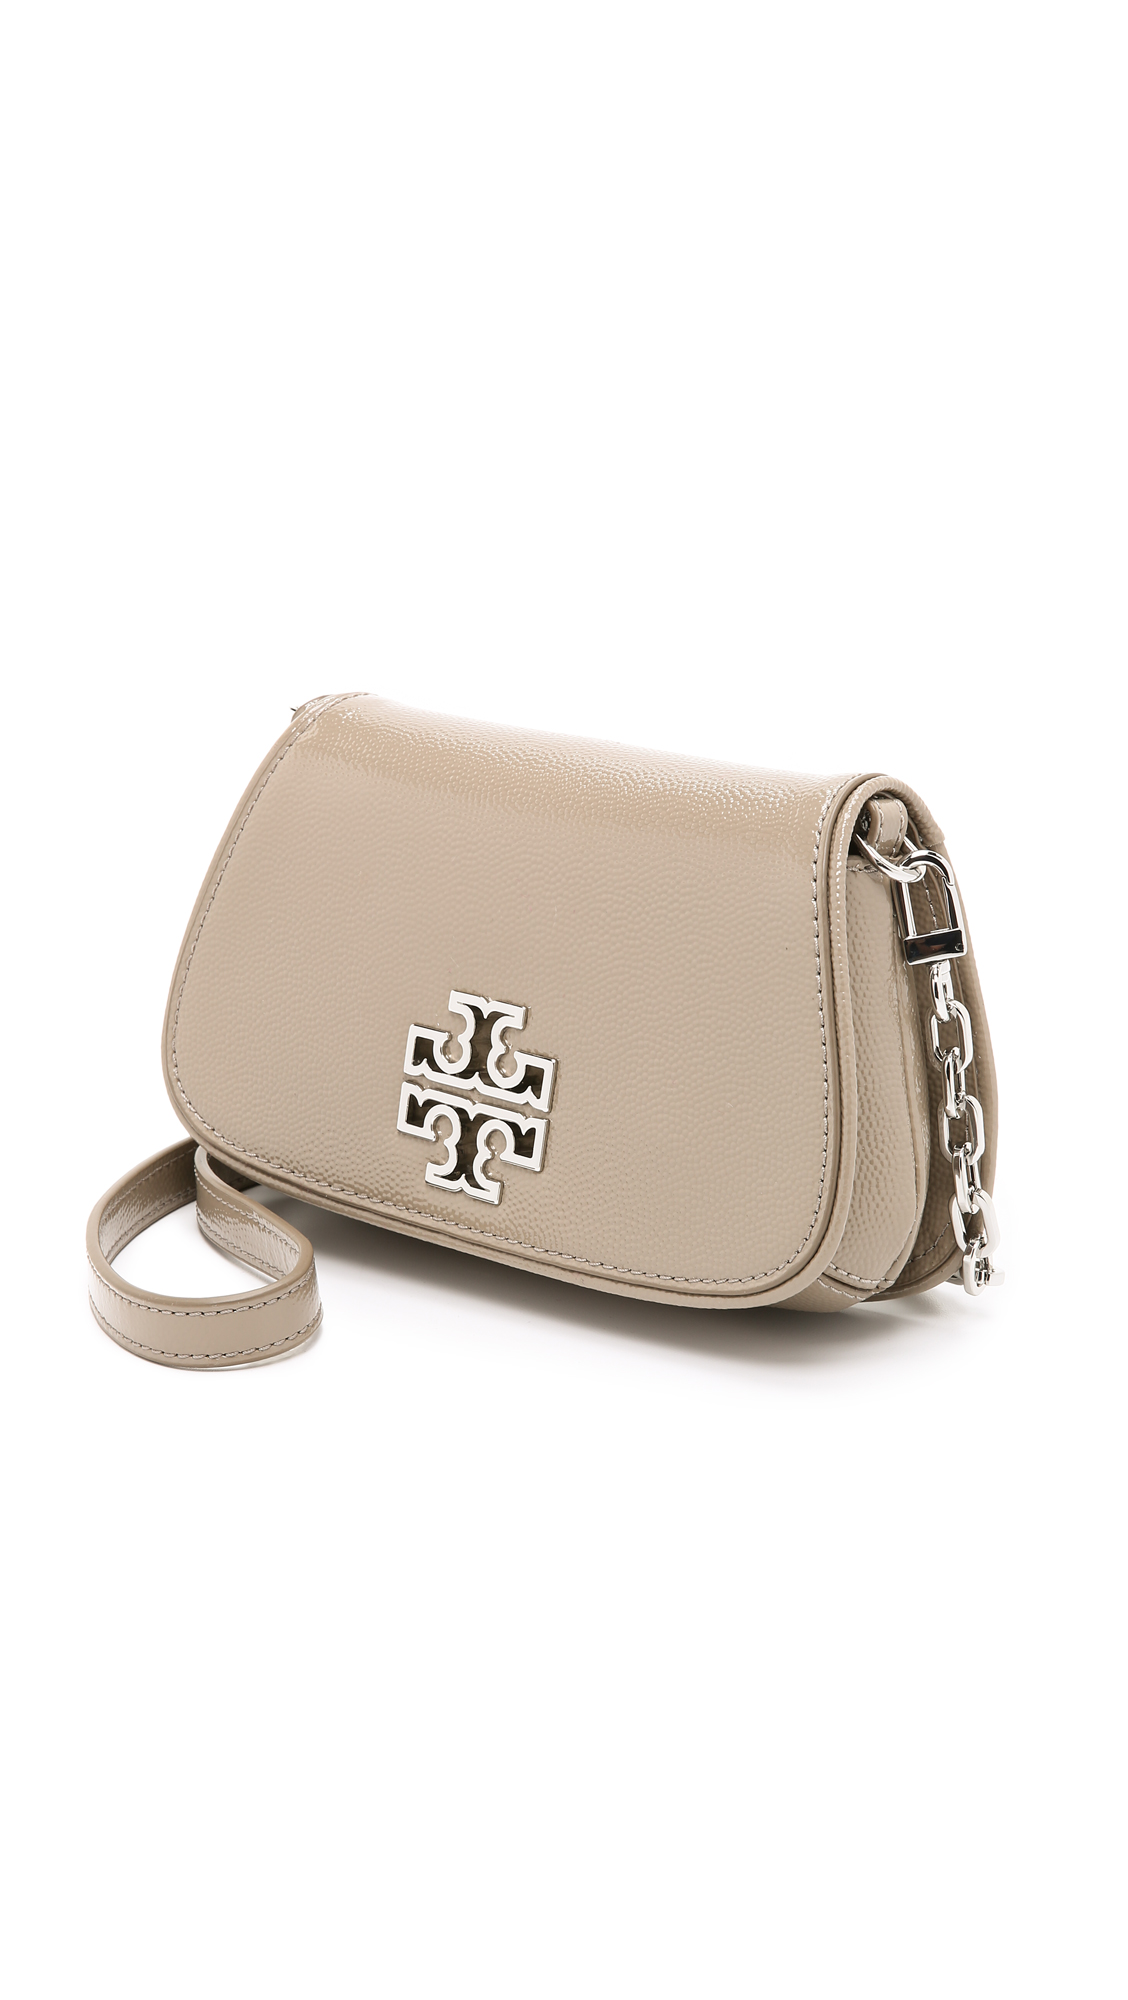 1ff0de28455 Tory Burch Britten Mini Cross Body Bag